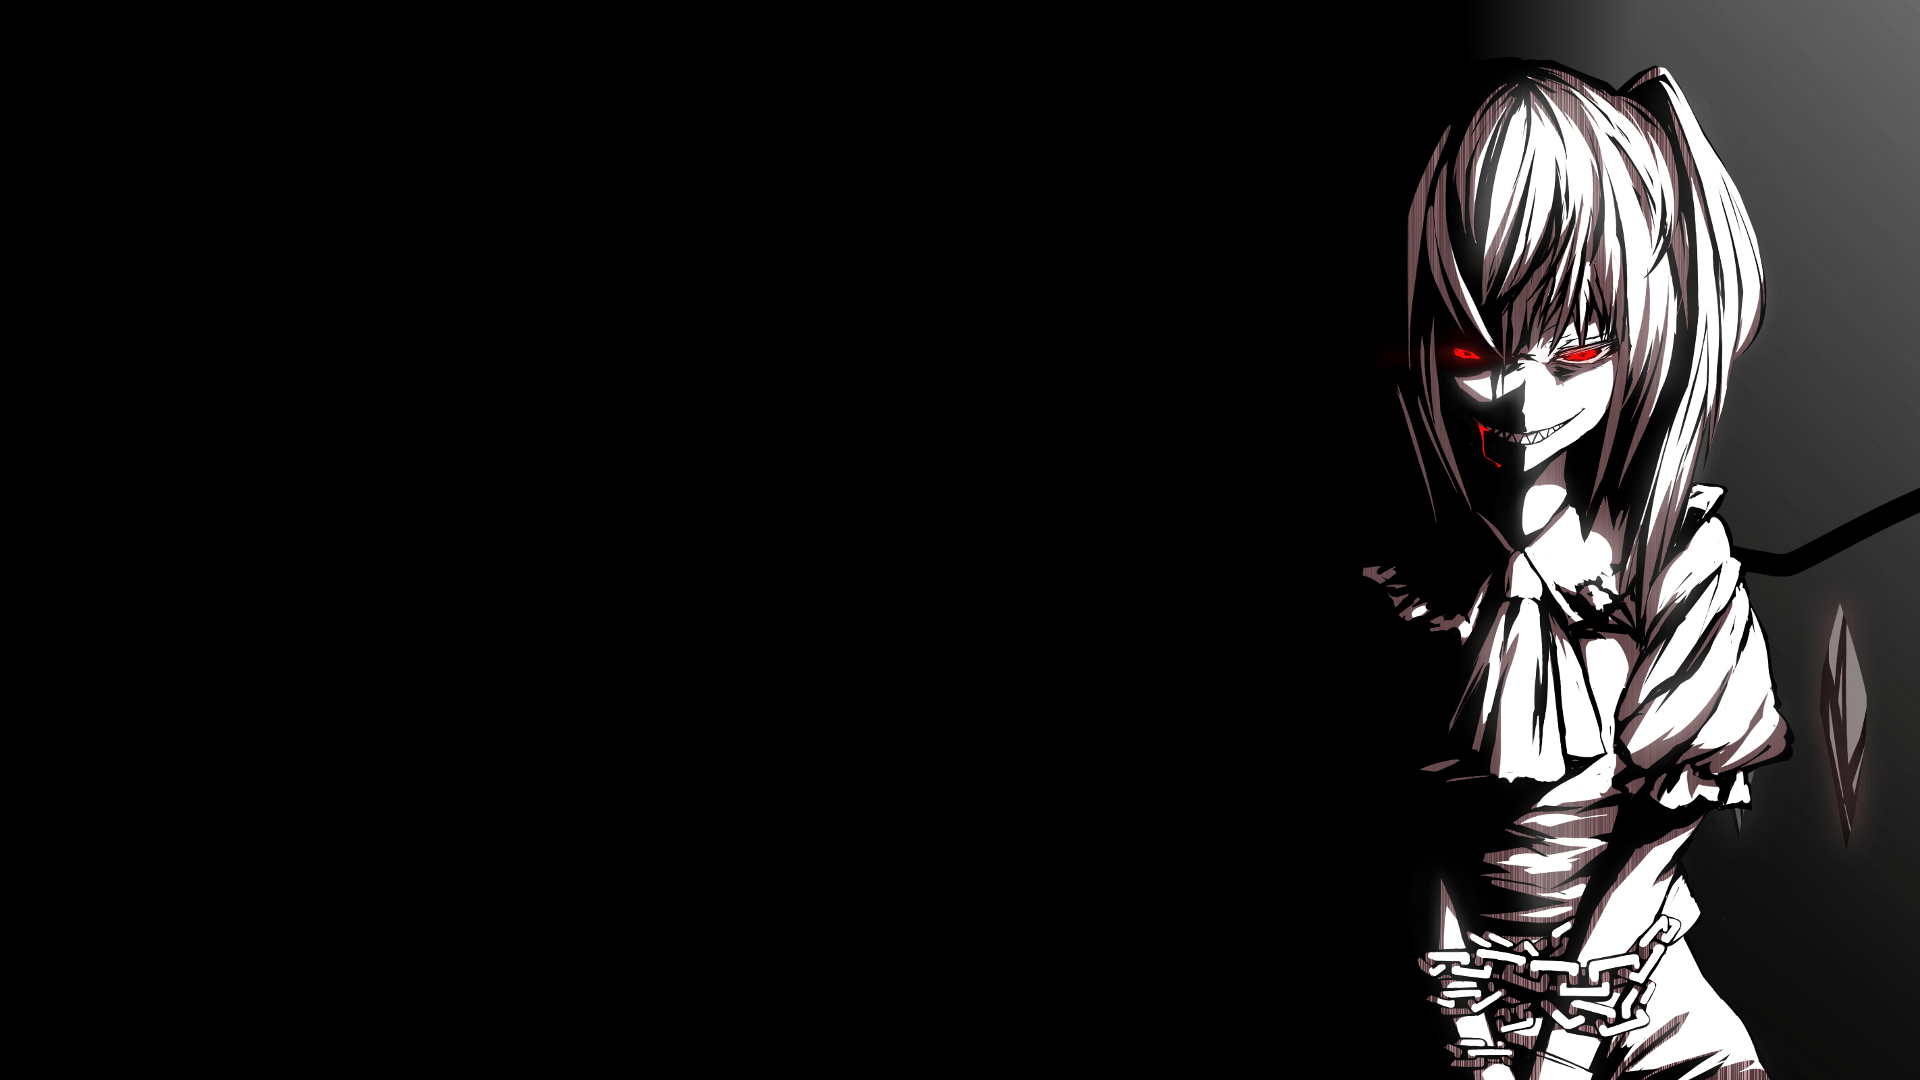 HD Anime Wallpapers 1920x1080